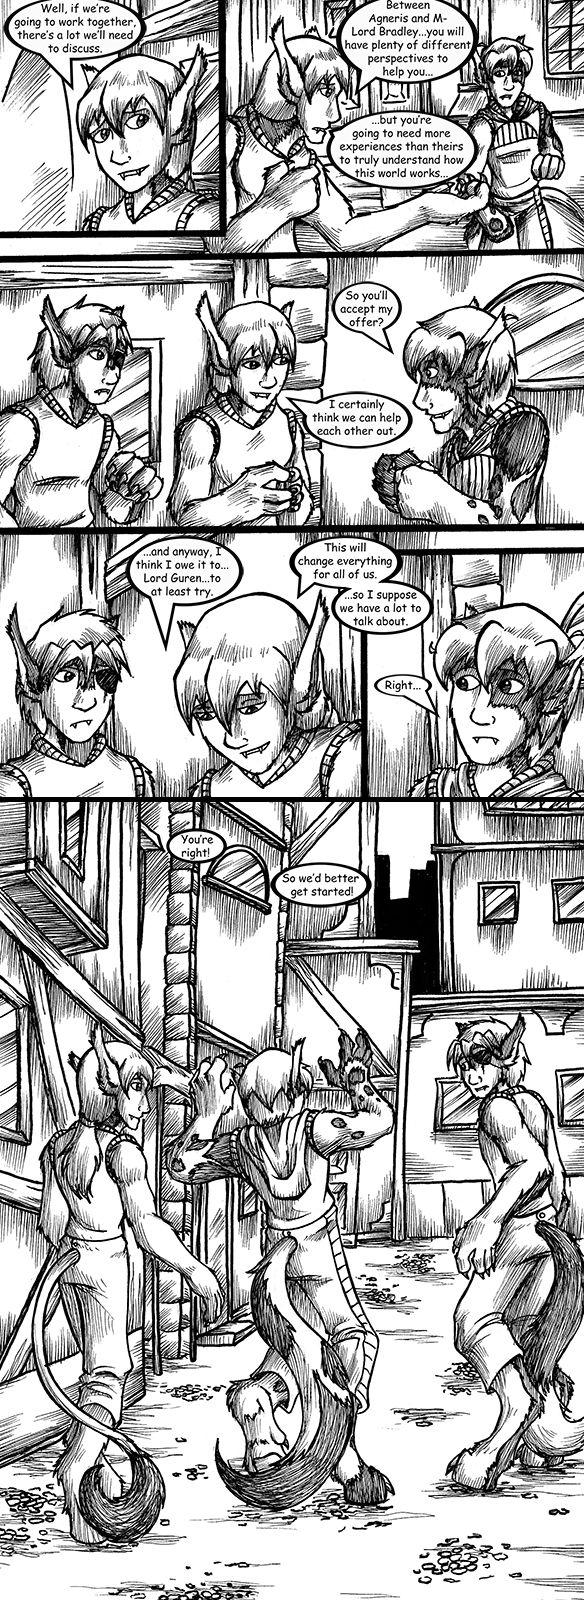 Ch 30 Page 18/19 END